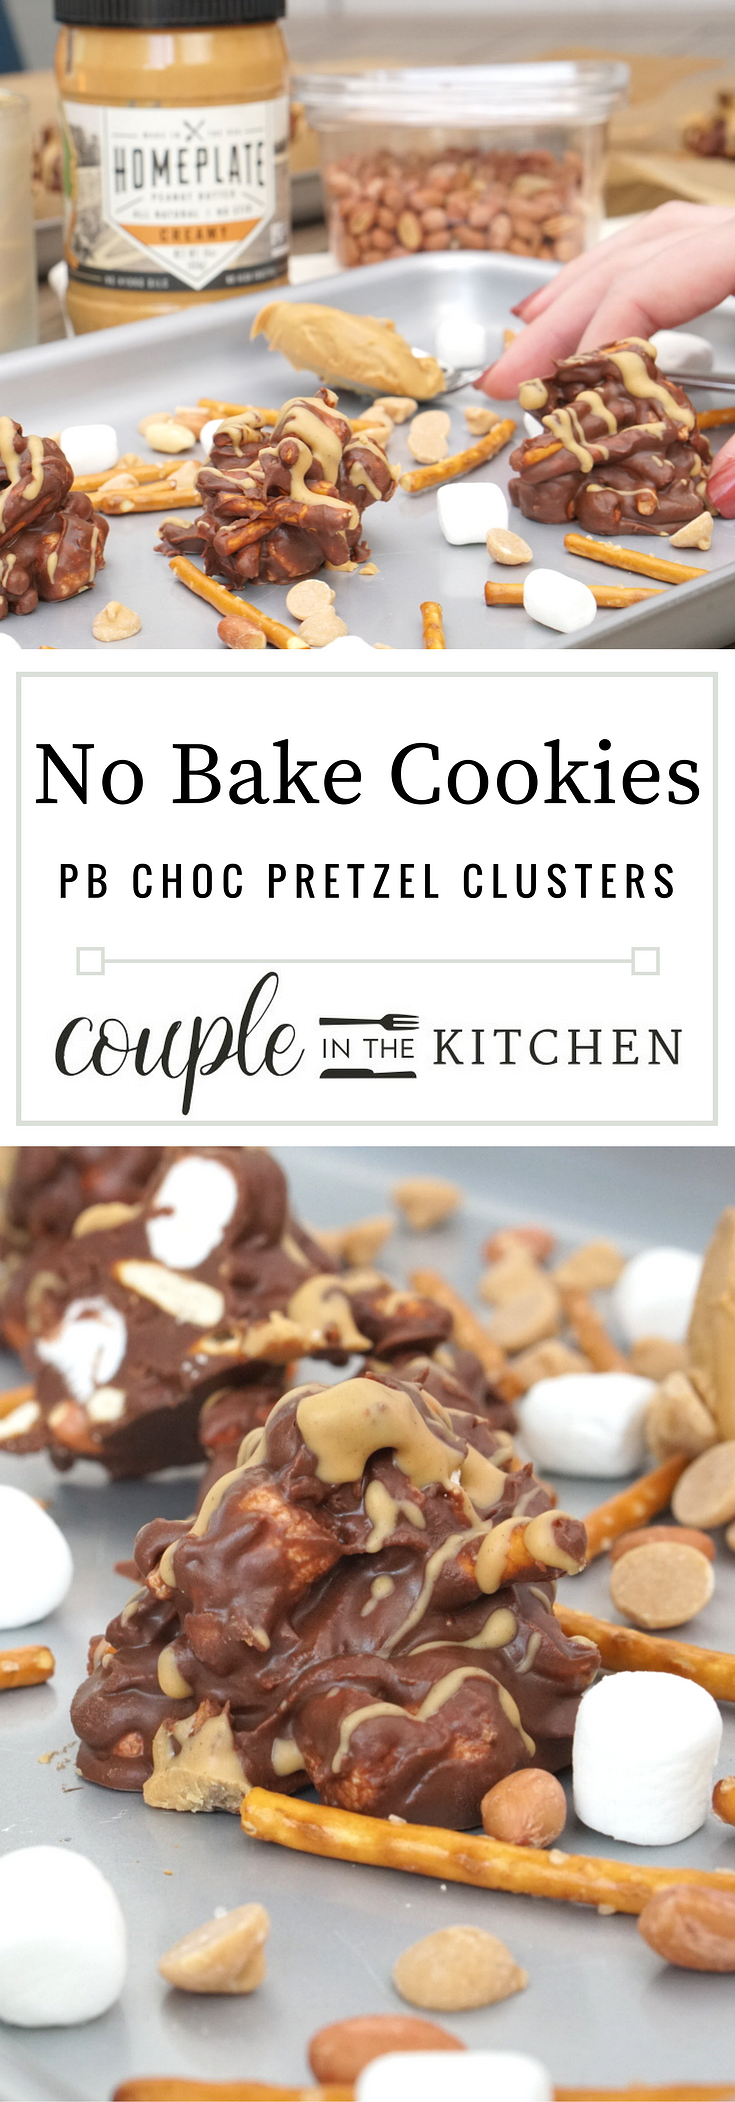 No Bake Cookies - Peanut Butter Chocolate Pretzel Clusters | coupleinthekitchen.com